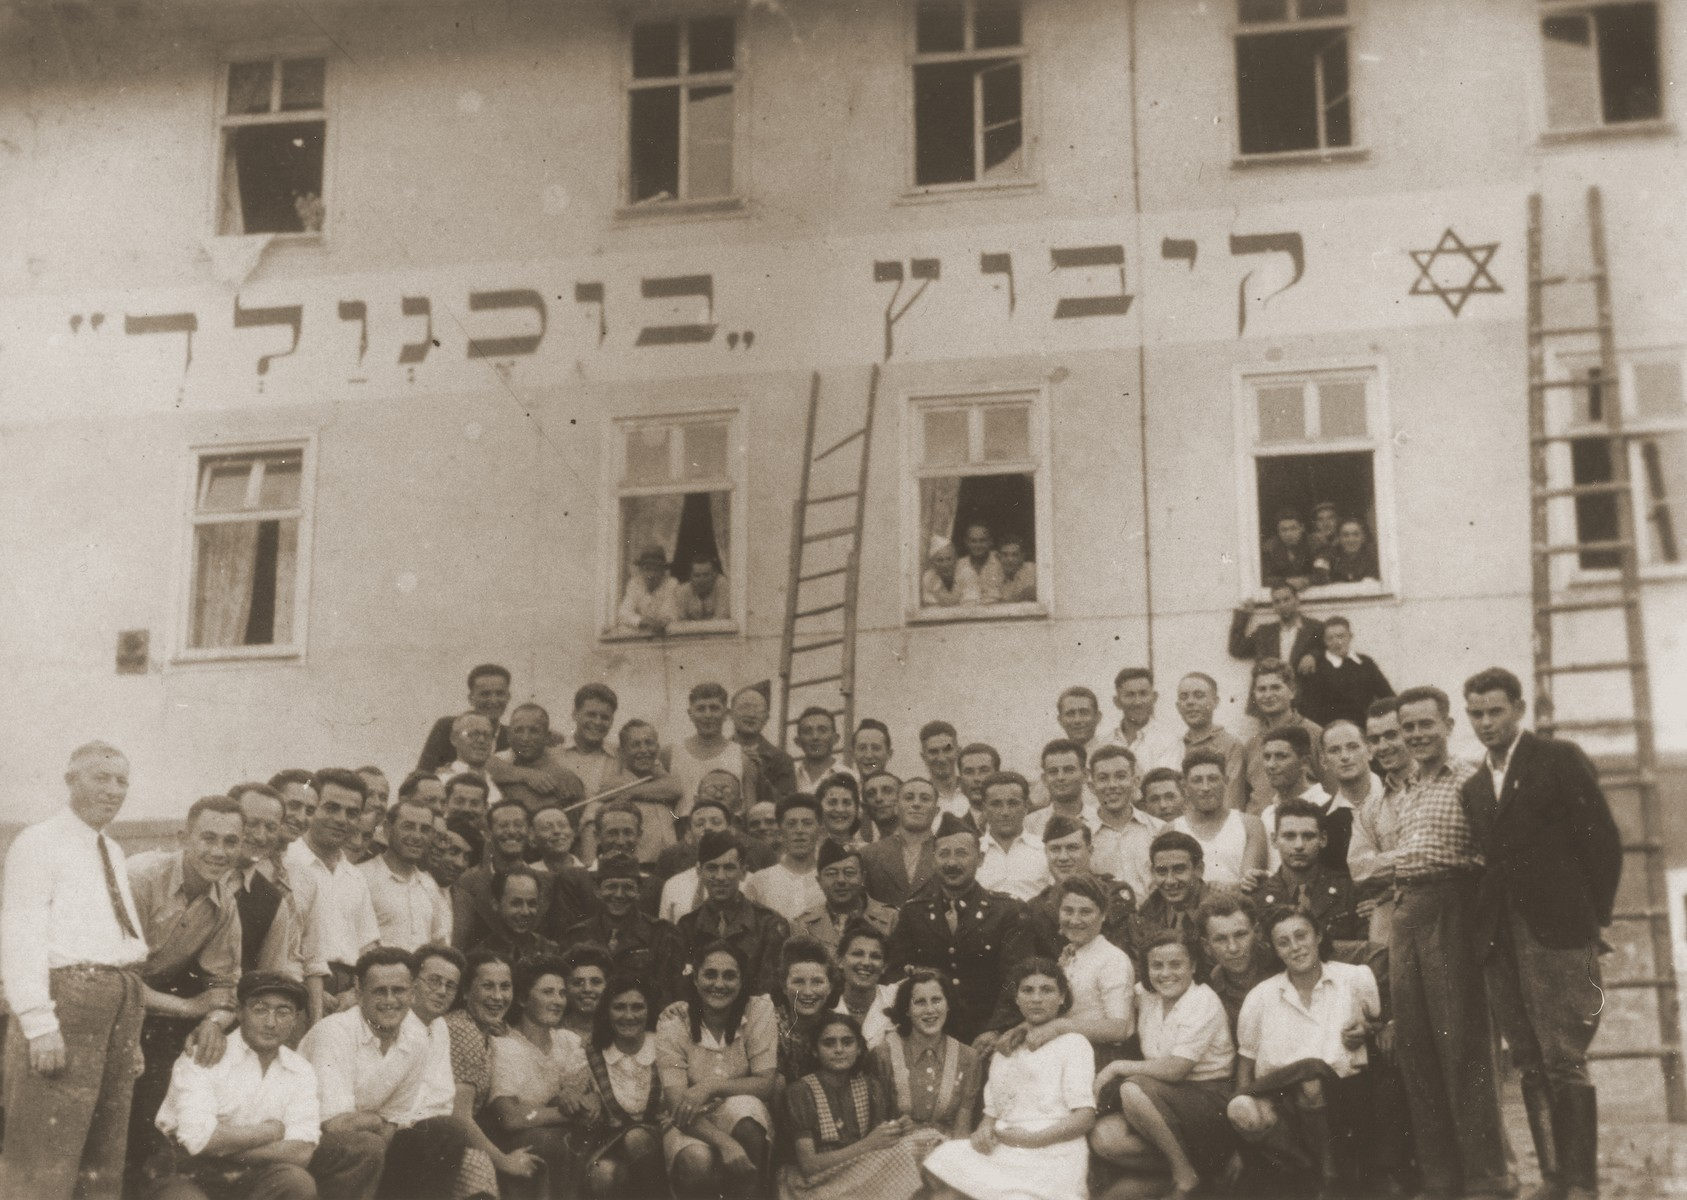 Members of the Kibbutz Buchenwald hachshara are gathered outside their barracks, beneath a banner bearing their name in Hebrew.